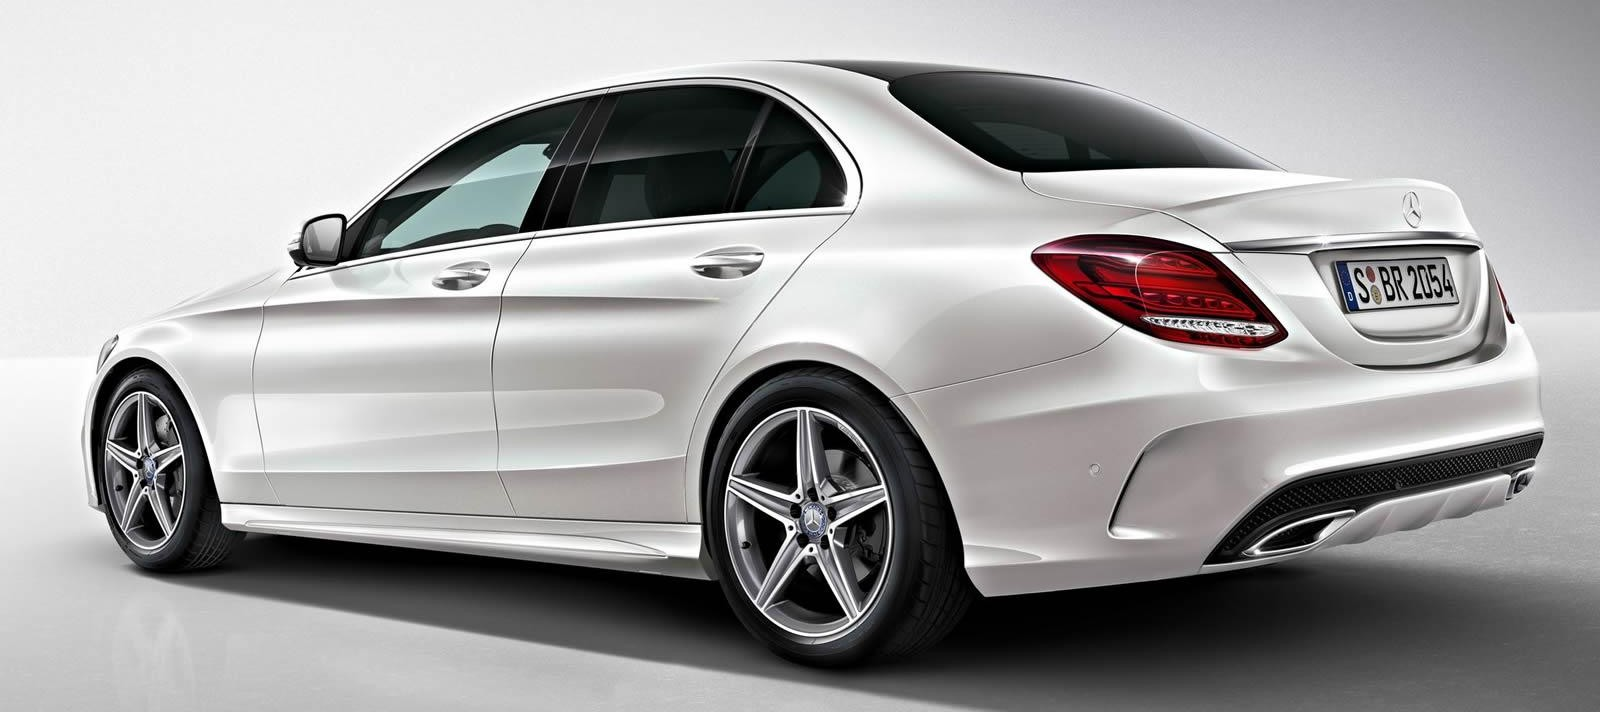 Mercedes Benz C Class 2017 Exterior Rear Side View